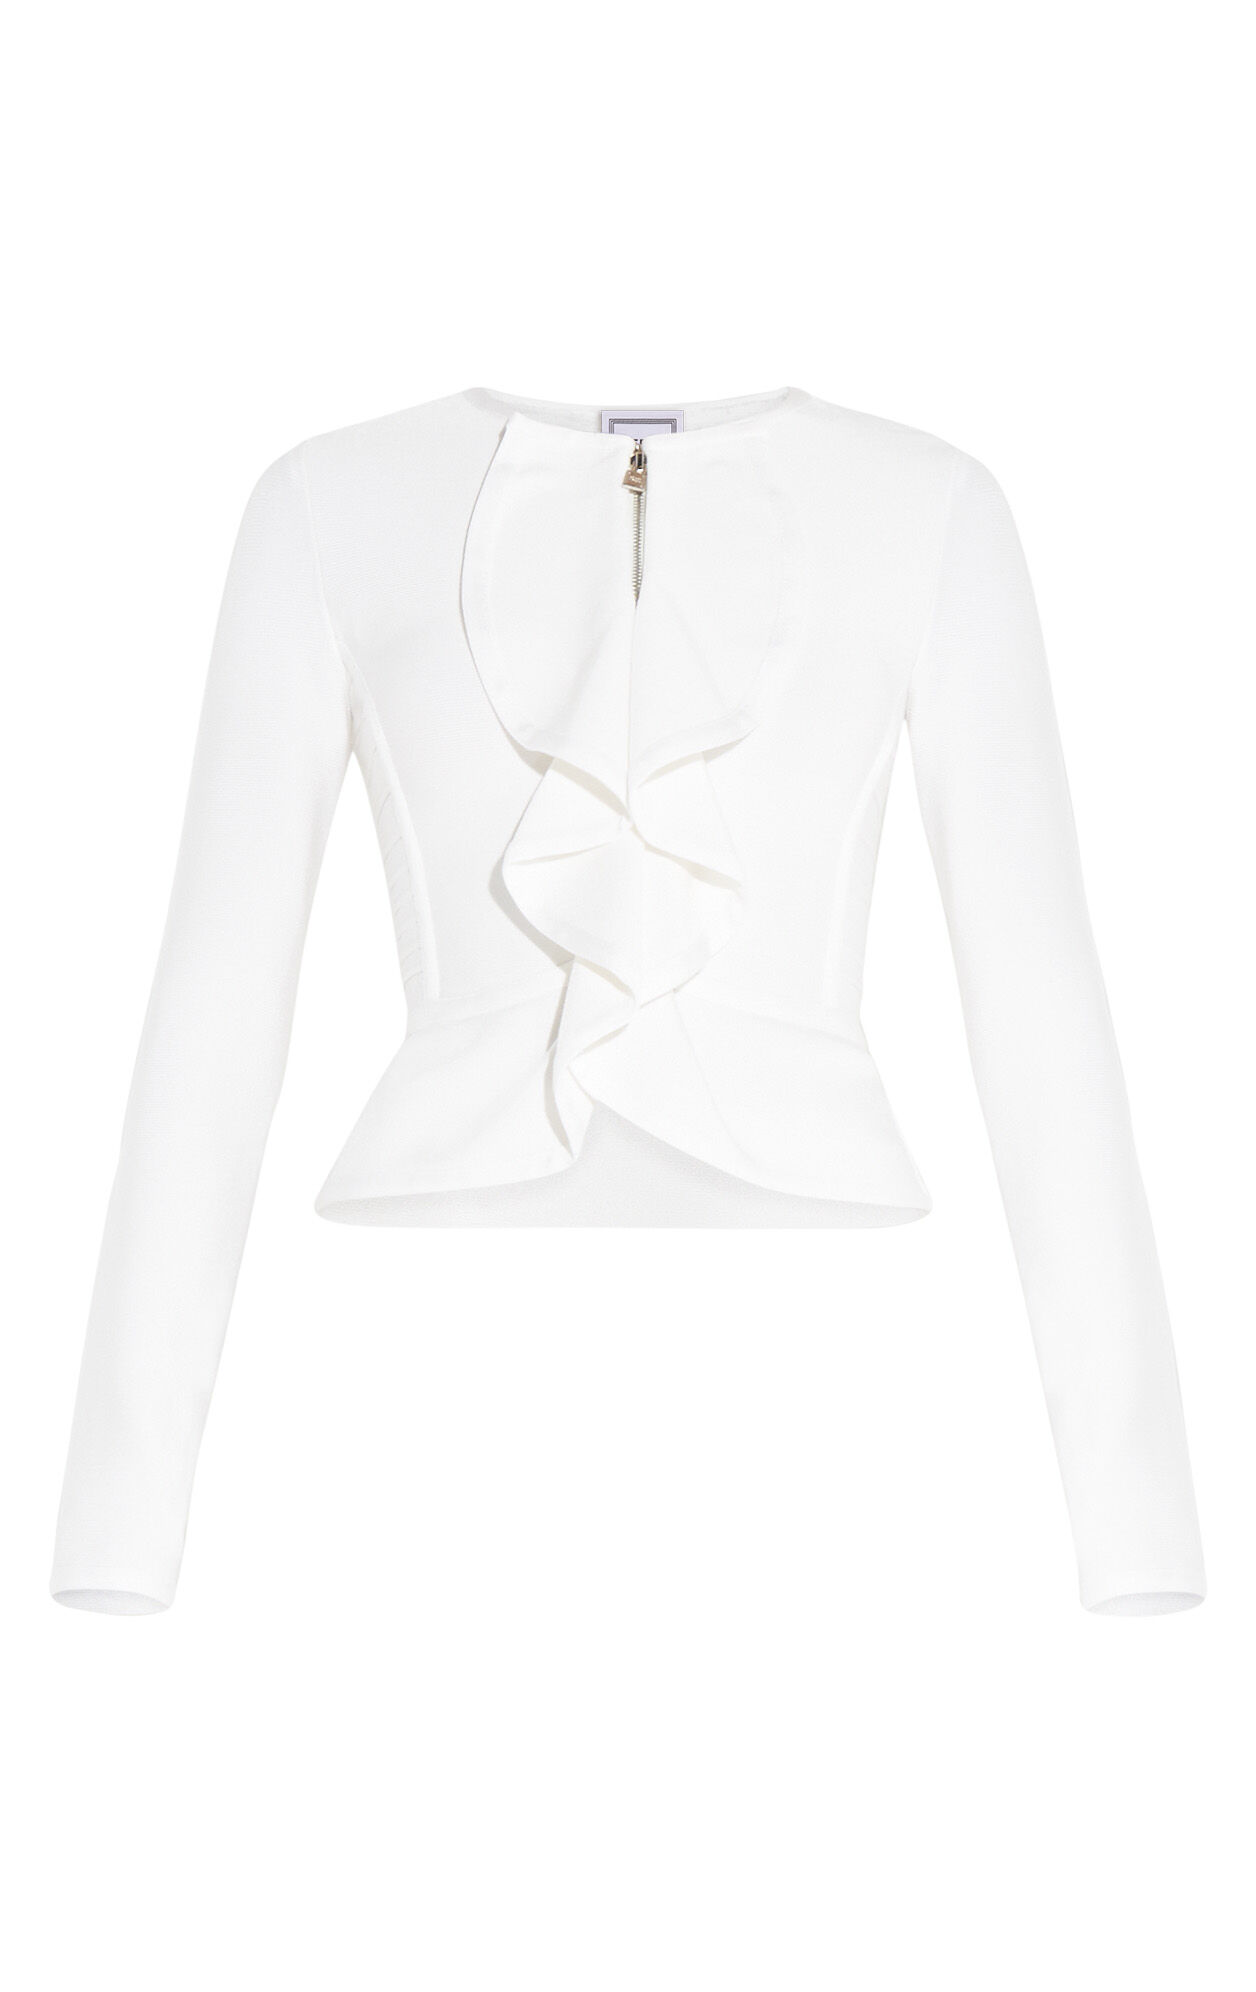 Kaydan Signature Essentials Peplum Cardigan